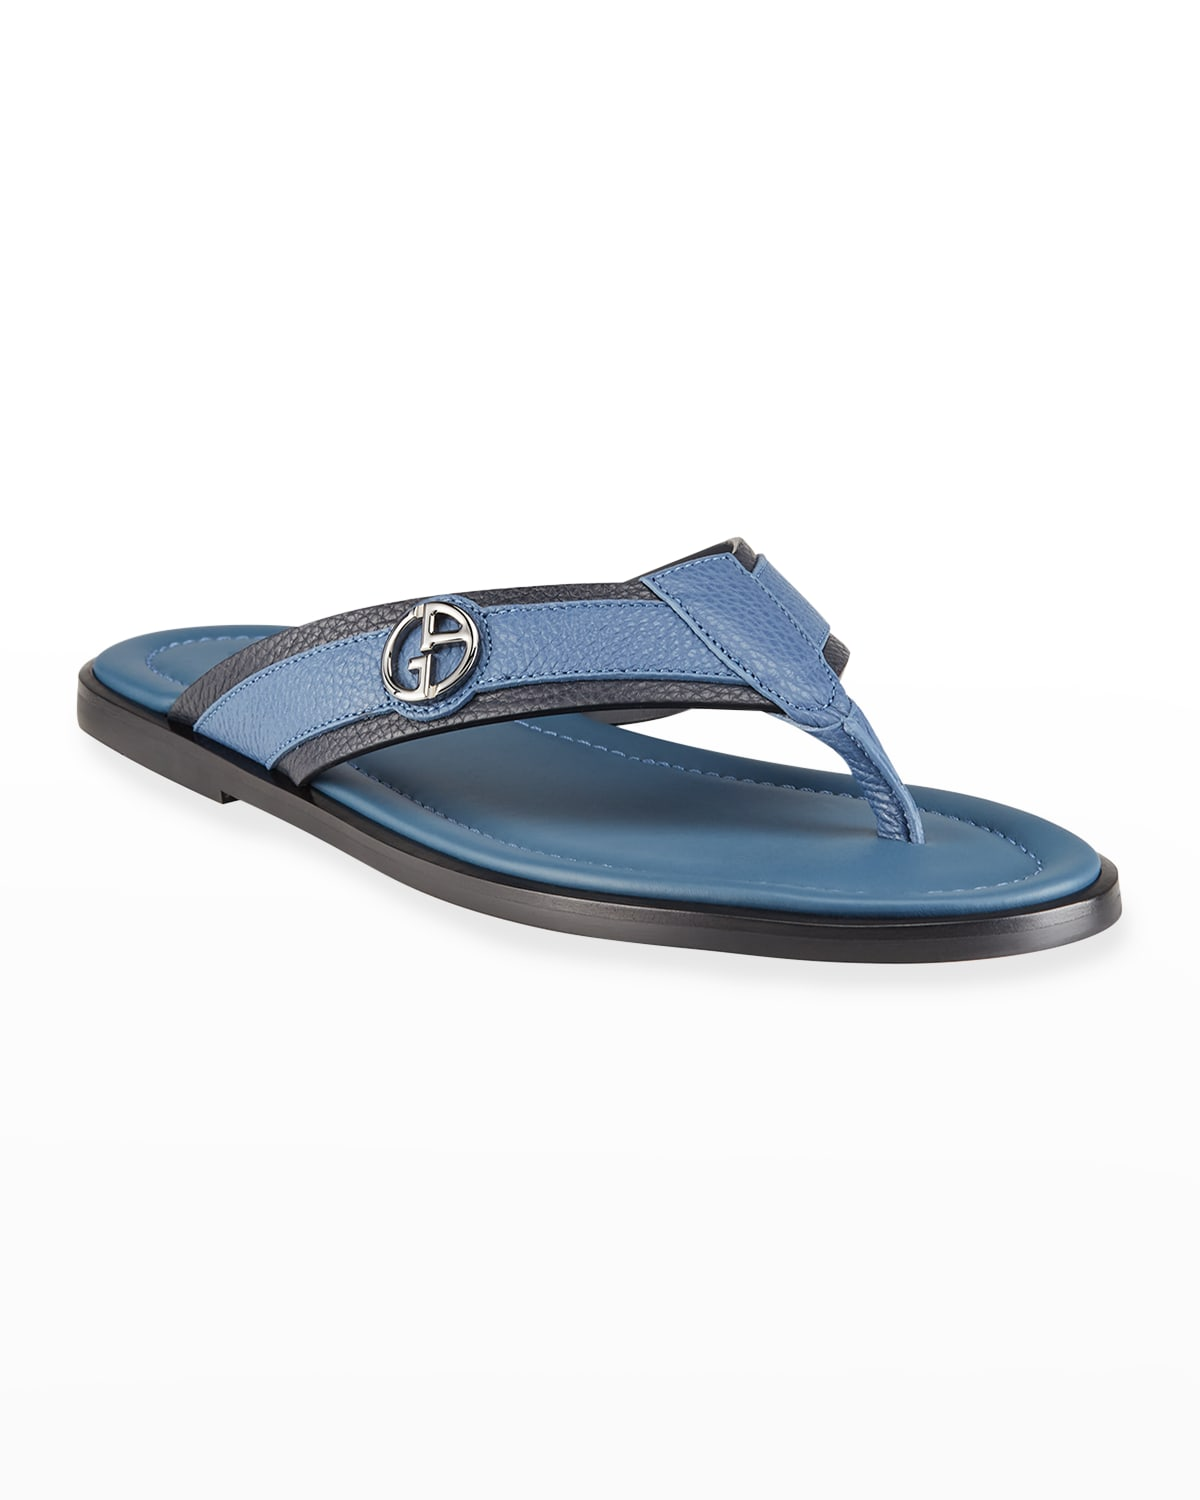 Men's Logo Two-Tone Leather Thong Sandals